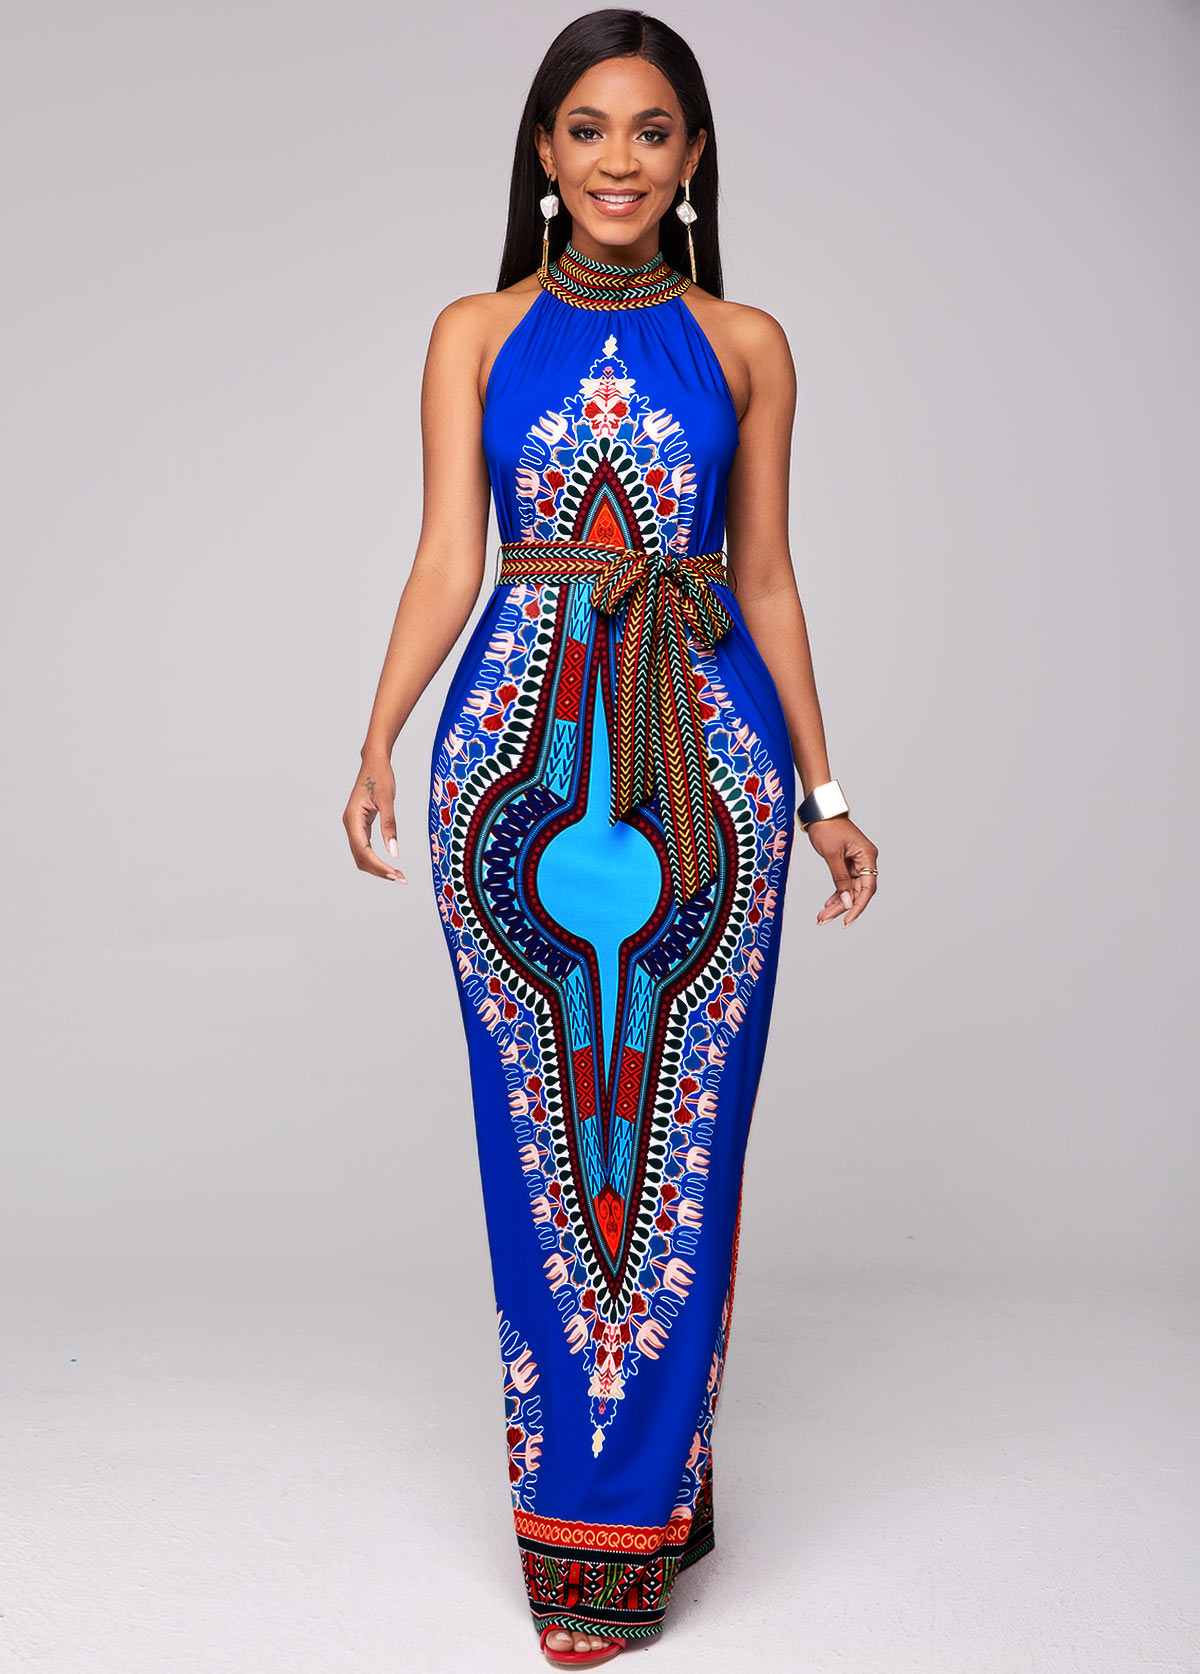 ROTITA Bib Neck Dashiki Print Belted Maxi Dress